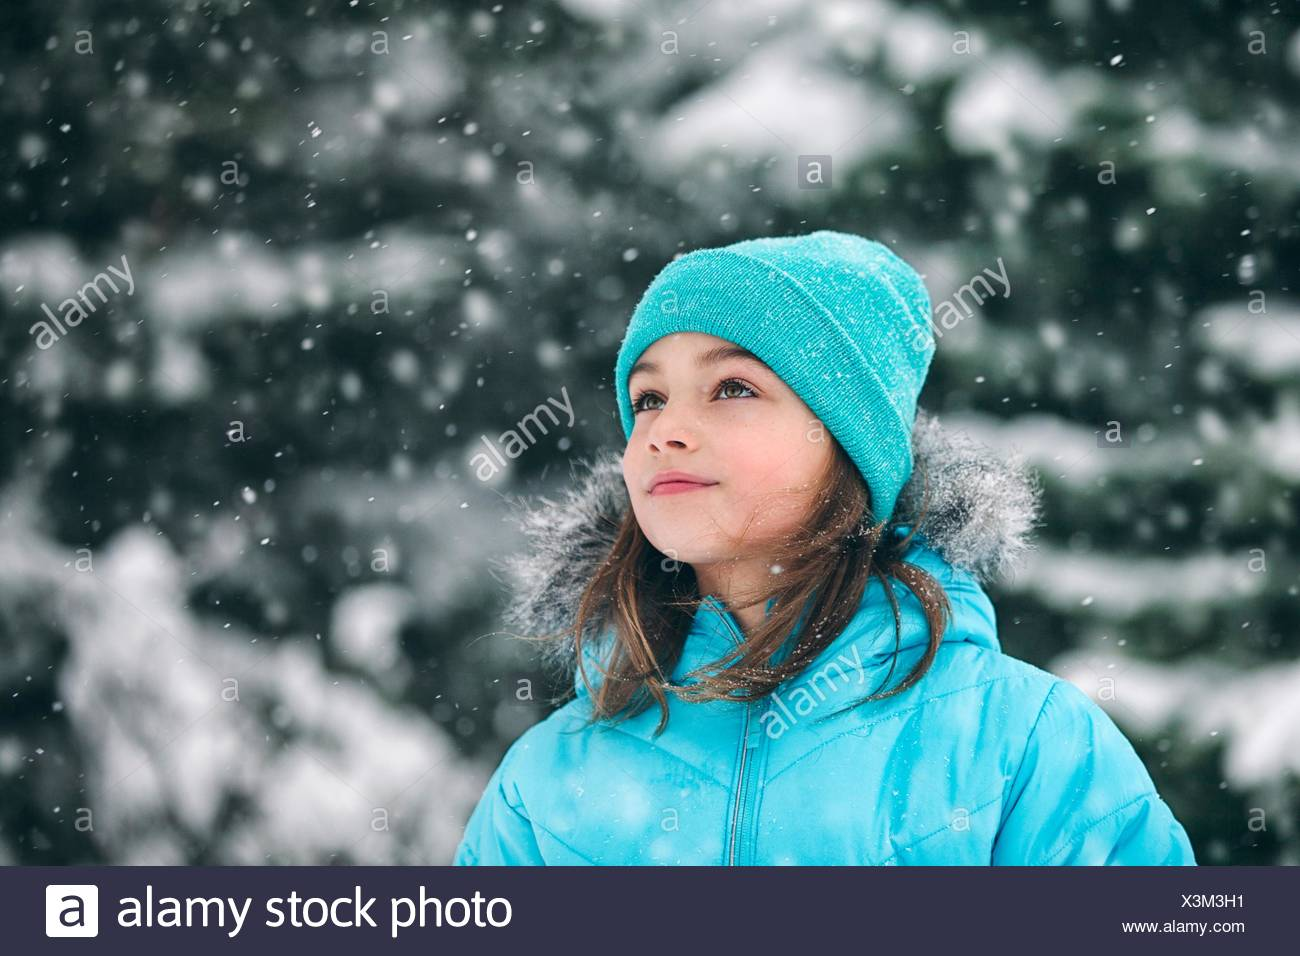 Girl wearing knit hat looking away, snowing - Stock Image